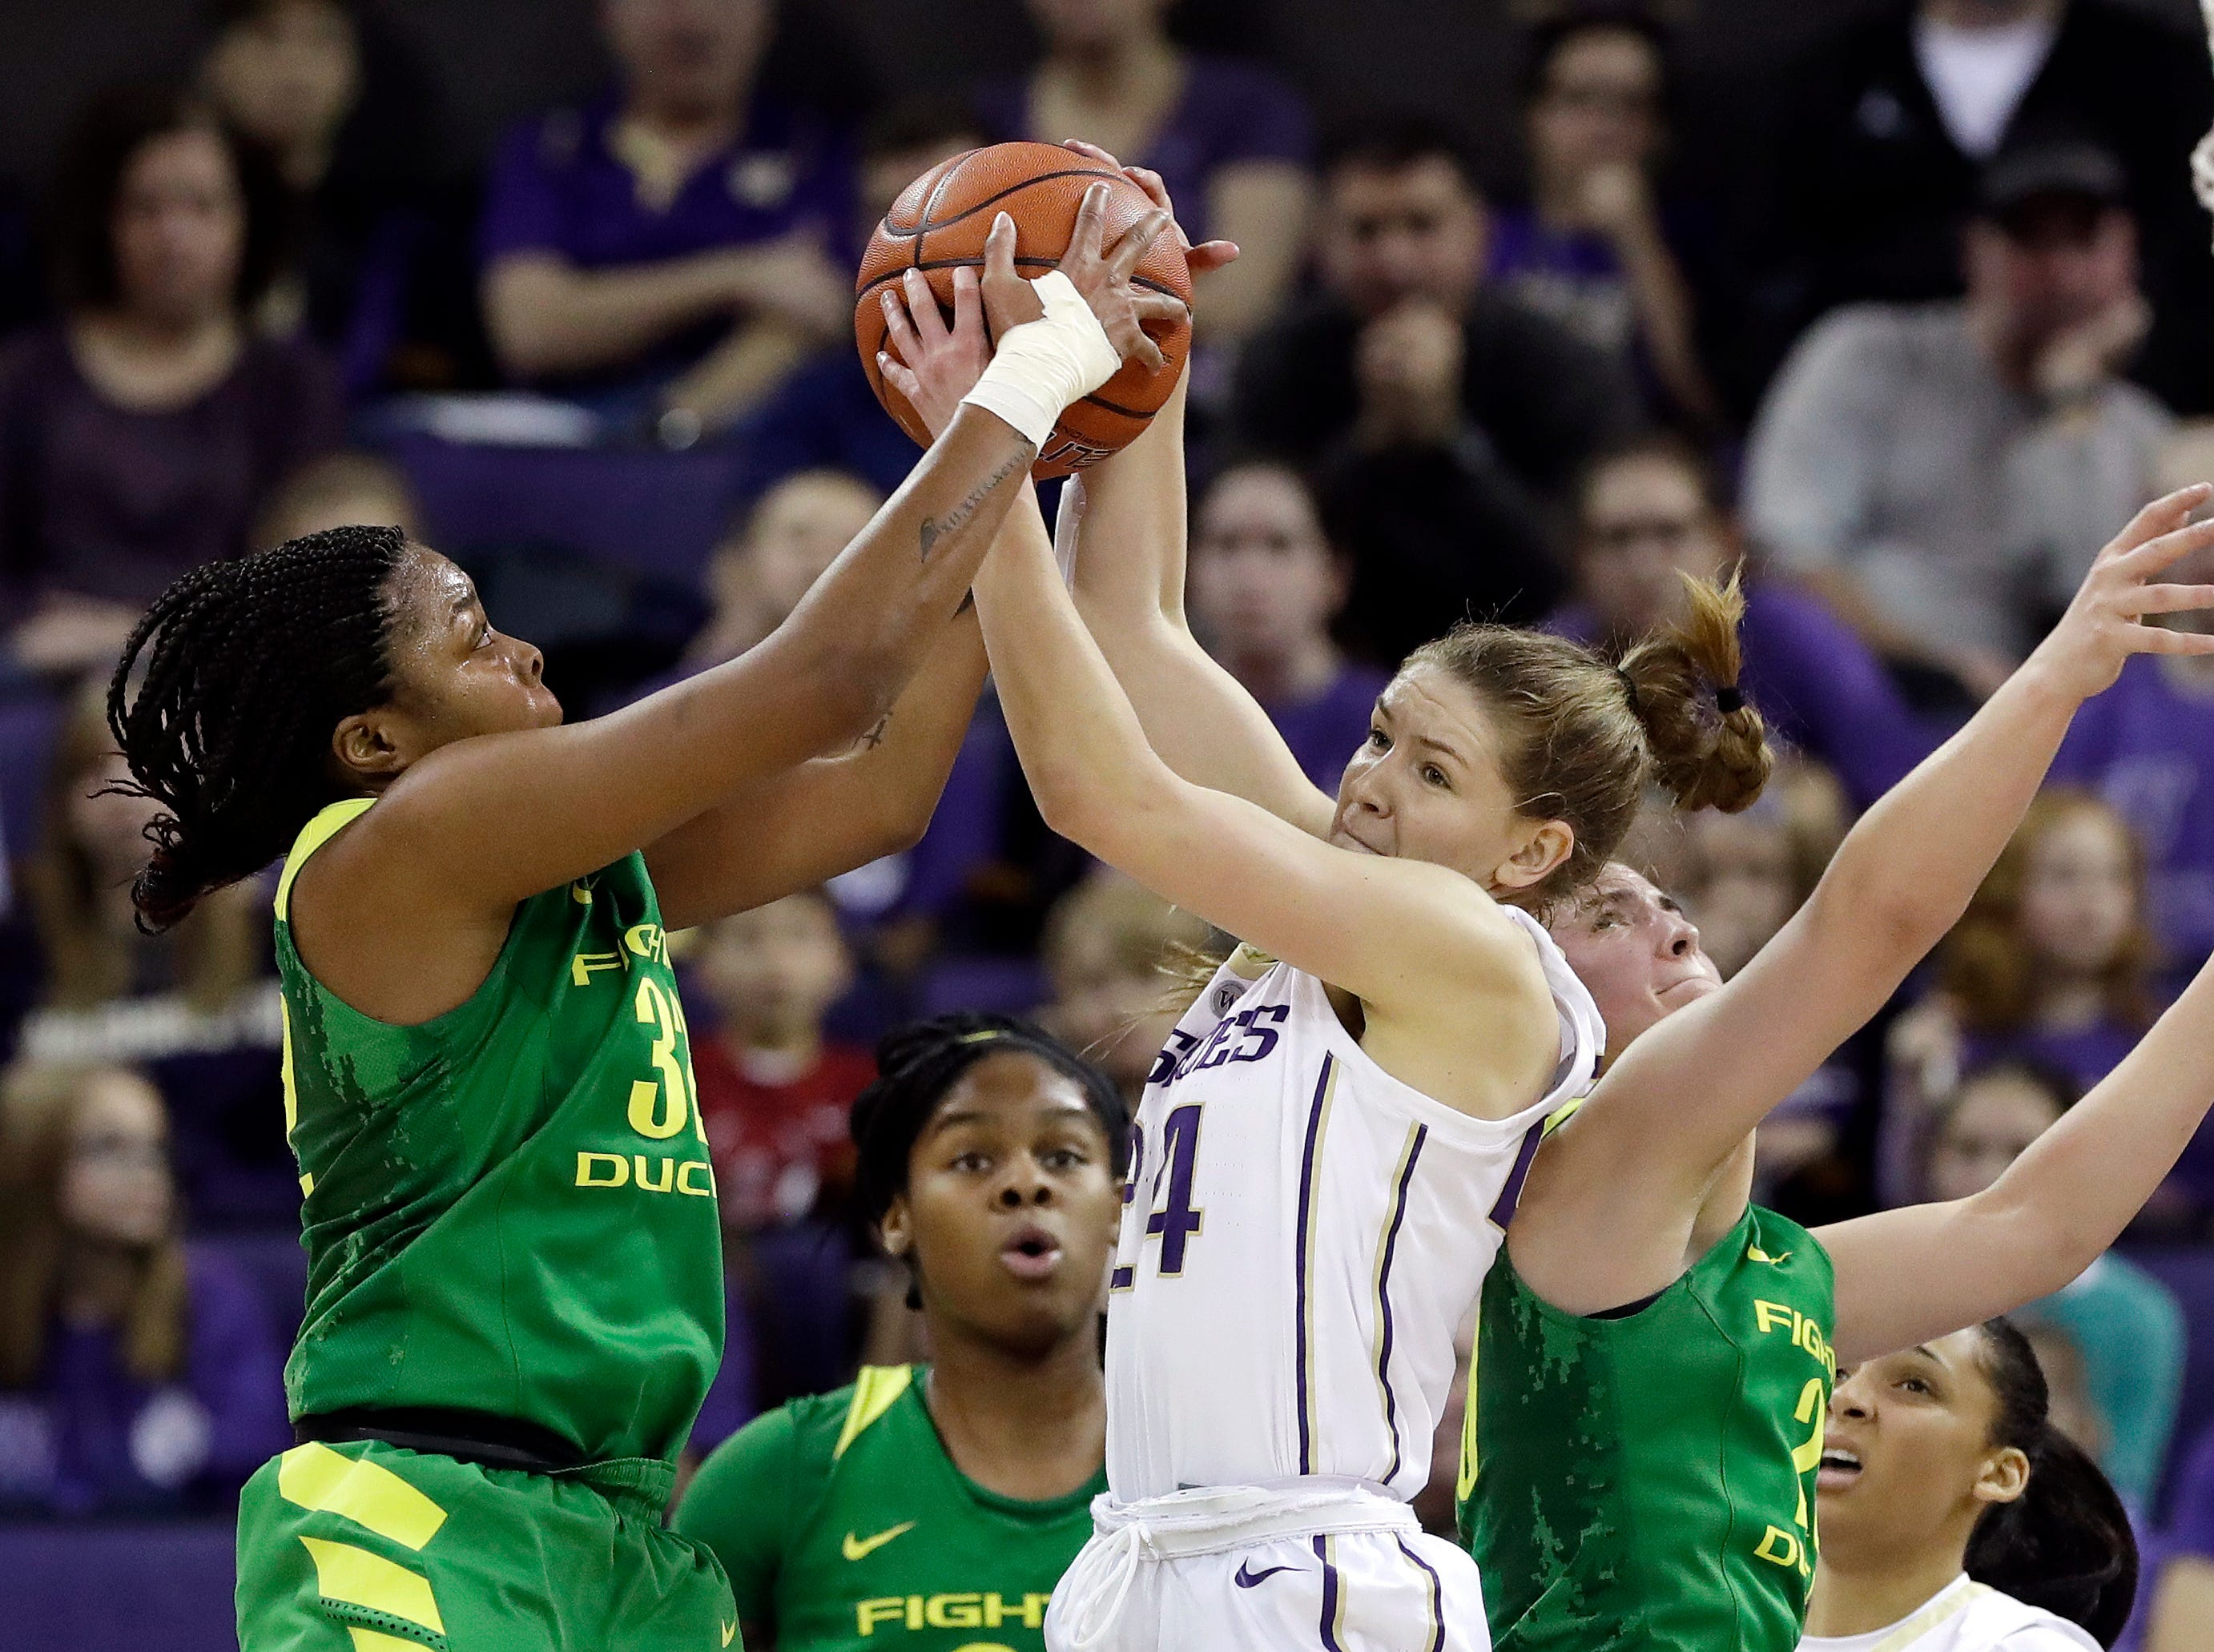 Washington's Jenna Moser (24) reaches for a rebound between Oregon's Oti Gildon, left, and Sabrina Ionescu in the second half of an NCAA college basketball game Sunday, Jan. 27, 2019, in Seattle. Oregon won 76-57.